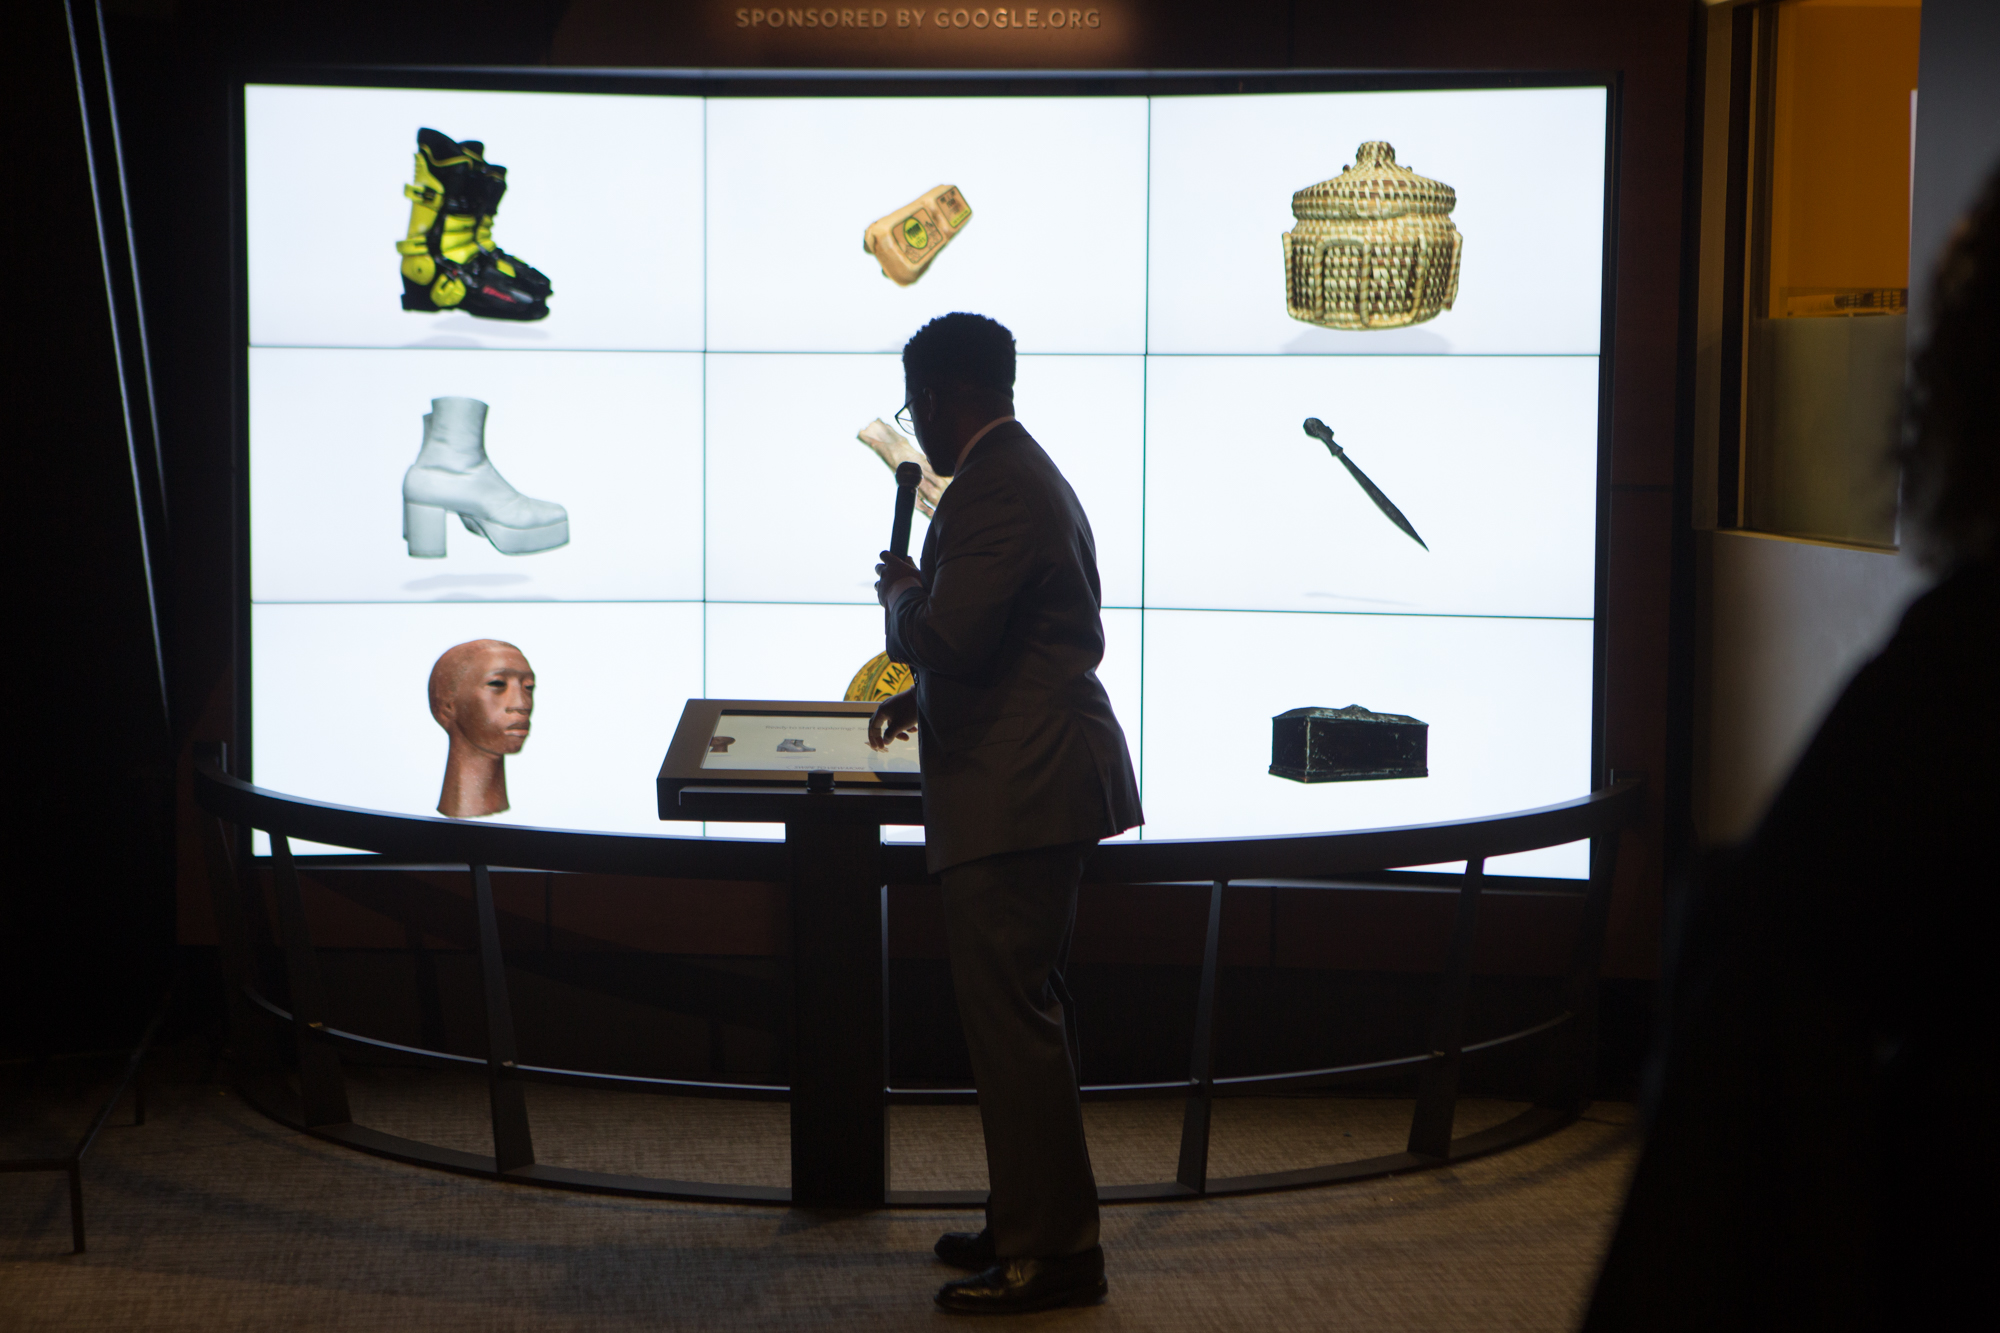 The new Google funded exhibit at the National African-American Museum made it's debut at a reception Feb. 1, 2018, in Washington, DC.